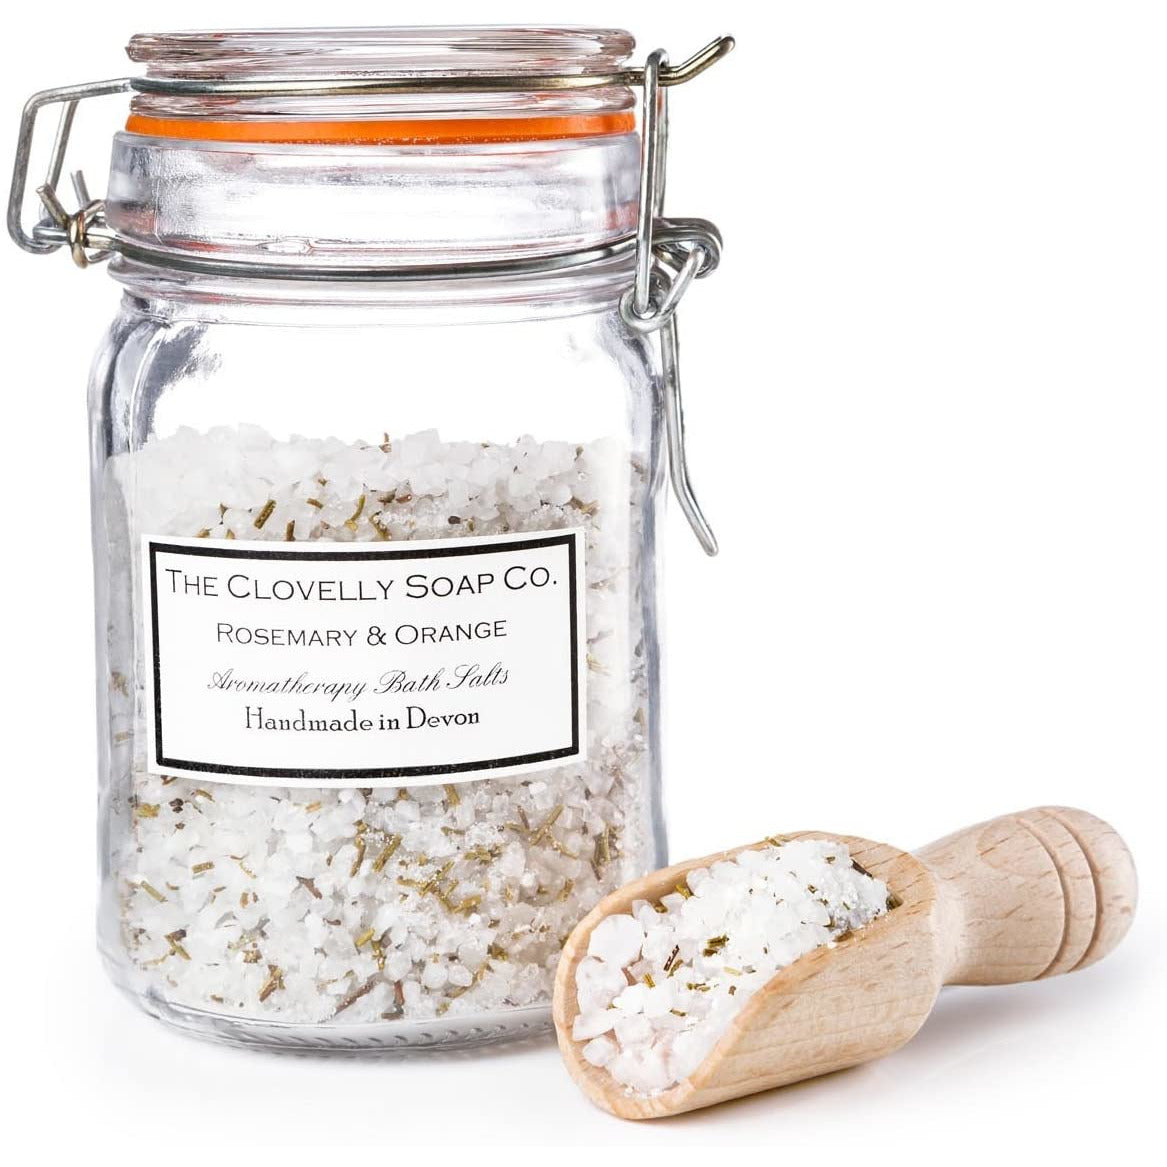 Rosemary & Orange Bath Salts with Sea Salt, Epsom Salt, Dendritic Star Salt, Essential Oils and Botanicals and its own wooden scoop - natoorio